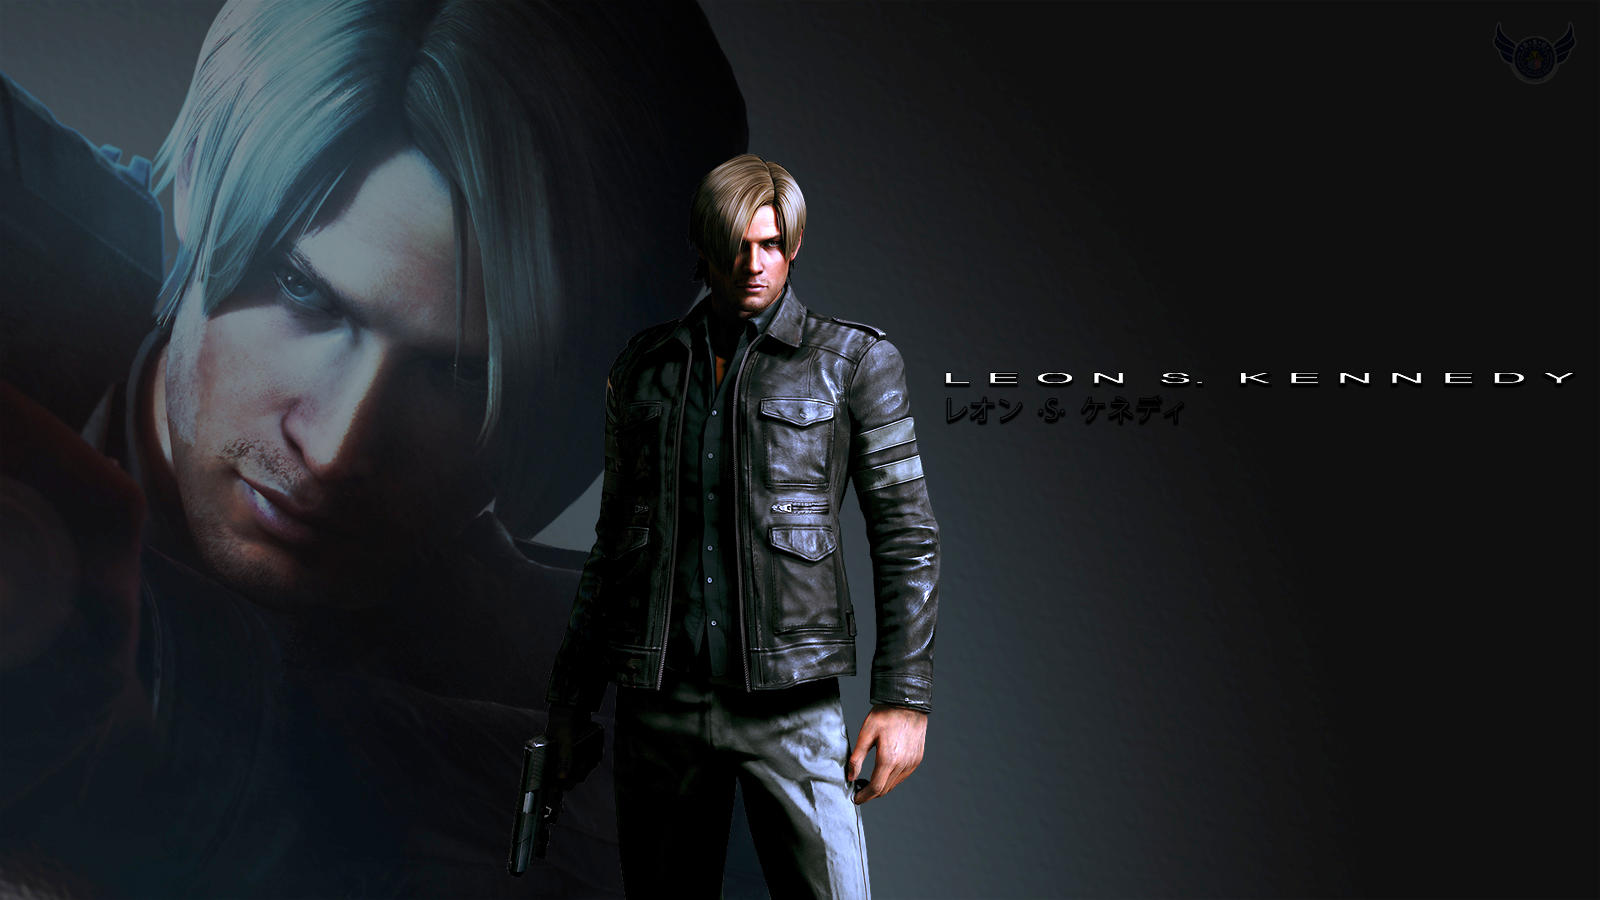 Strongest Metal Gear Solid Character Leon S Kennedy